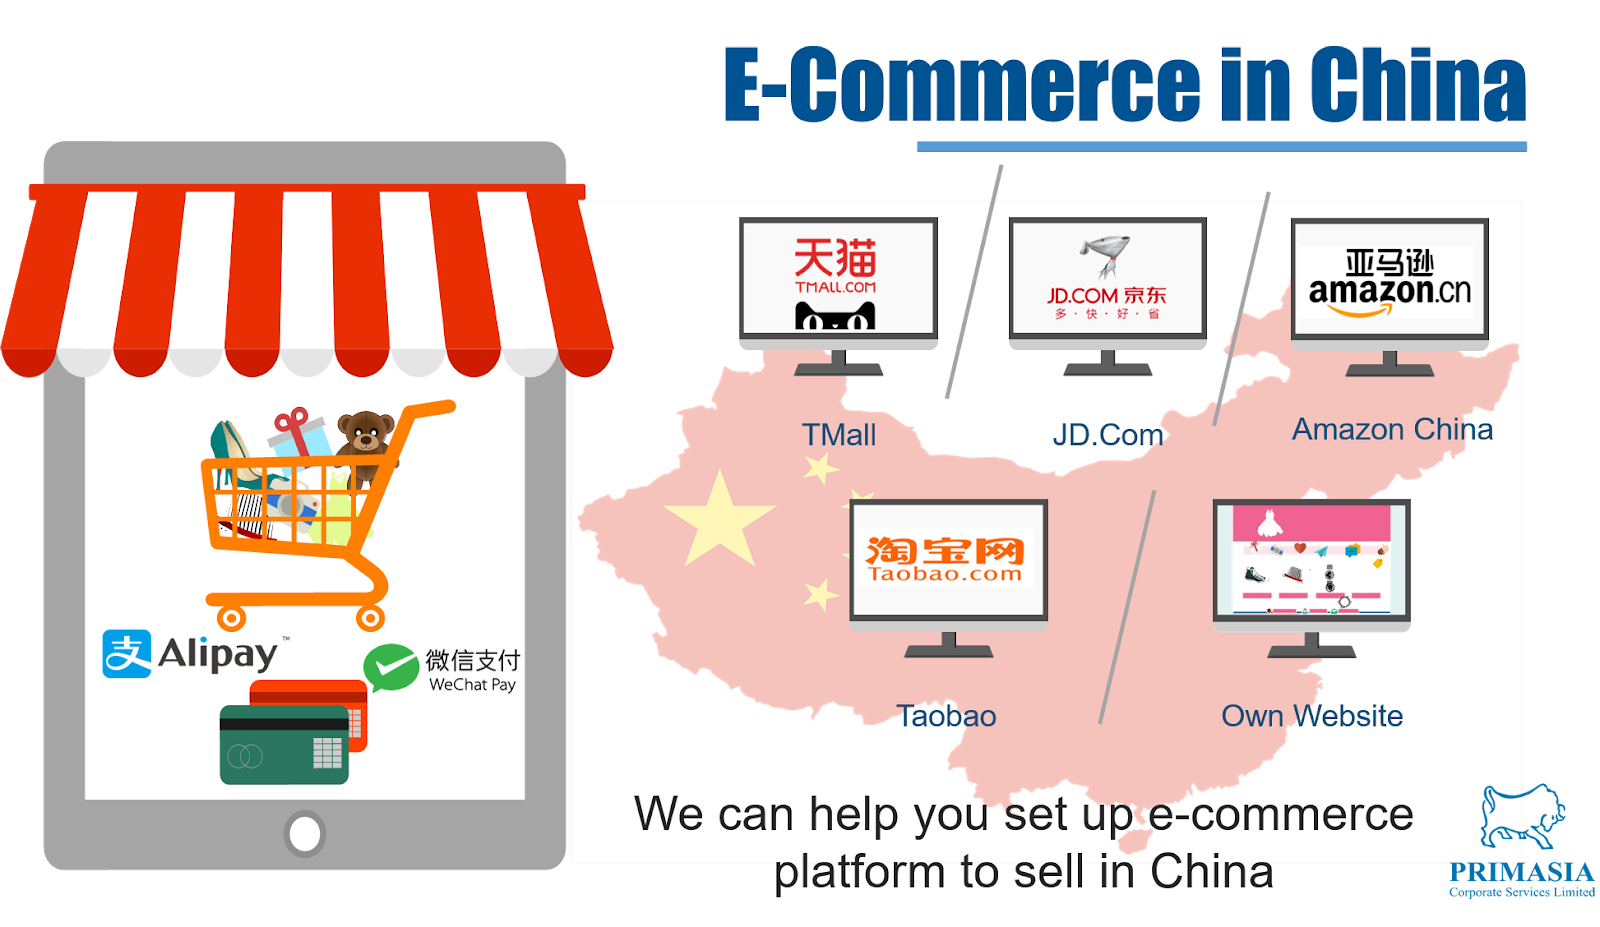 Primasia Corporate Services Limited: China E-commerce Solutions